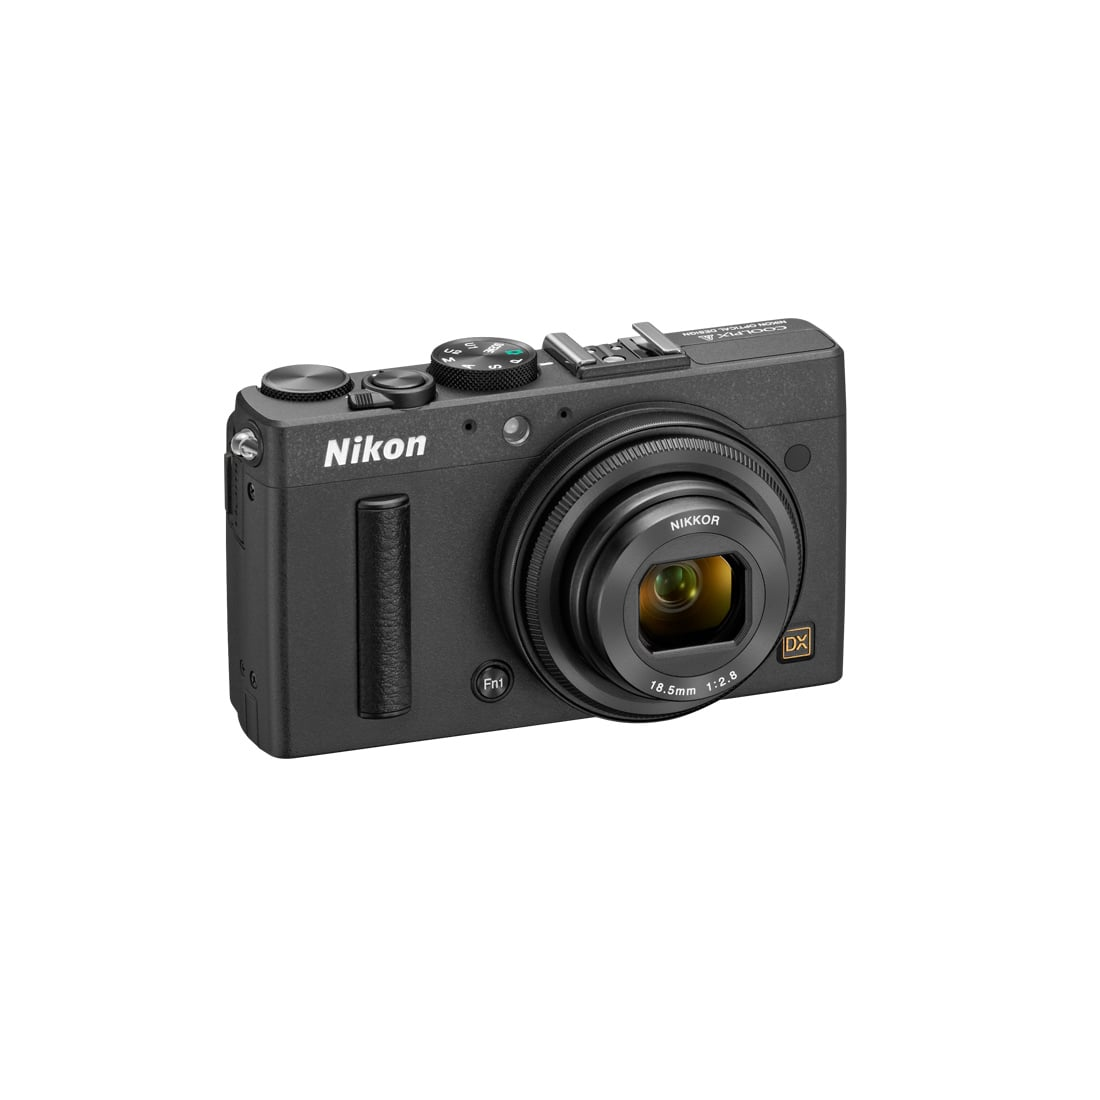 But before you buy, check out the technical nitty-gritty:  2.6 x 4.4 x 1.6 inches 0.67 pounds 16.2 MP DX-format sensor 18.5mm f/2.8 lens 1080p video recording 3-inch LCD display 4 frames per second continuous shooting at full resolution